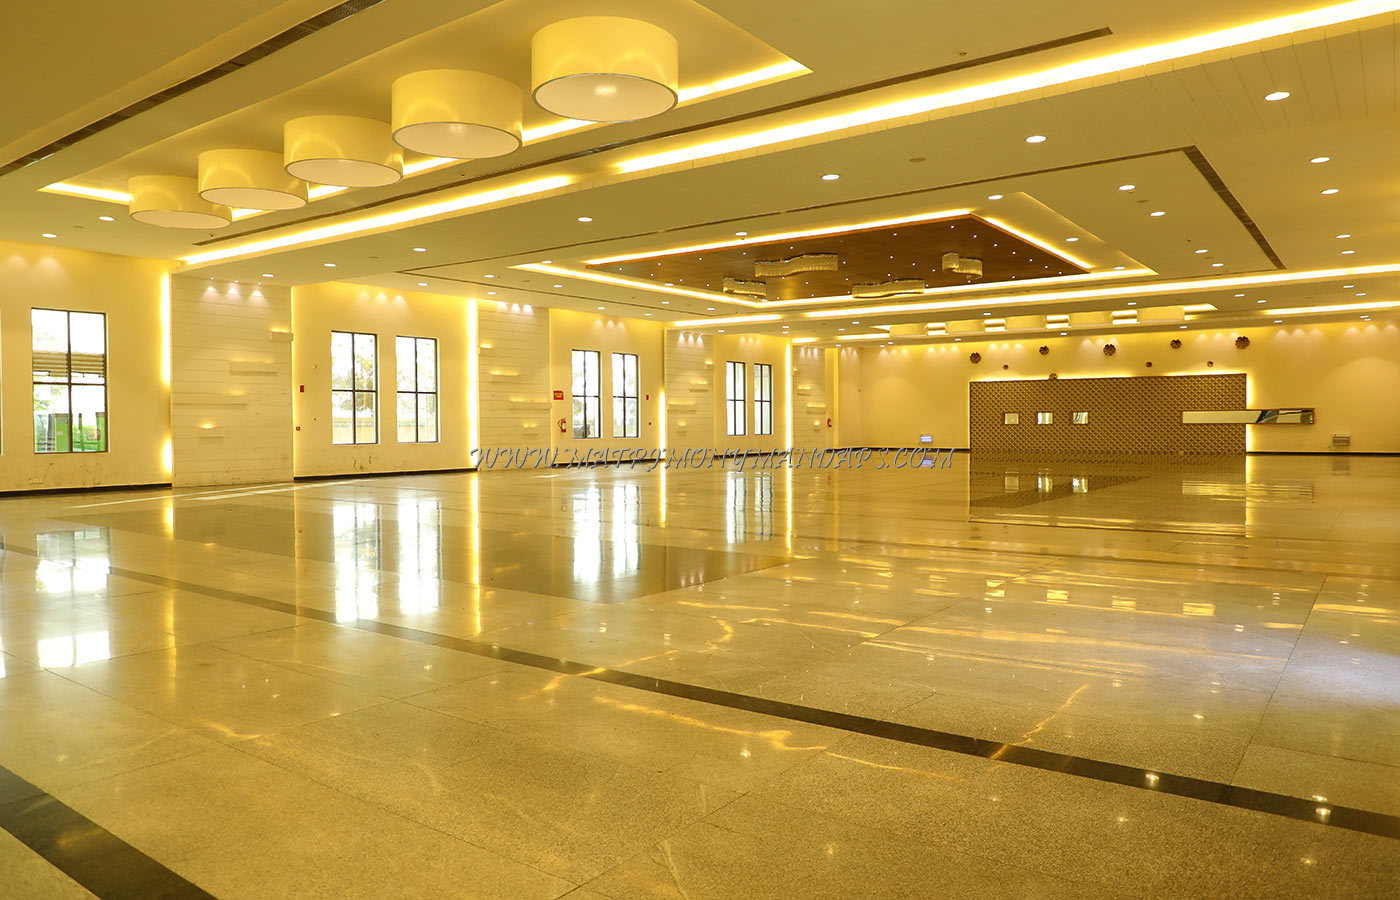 Find the availability of the GMR Convention Center (A/C) in Patancheru, Hyderabad and avail special offers